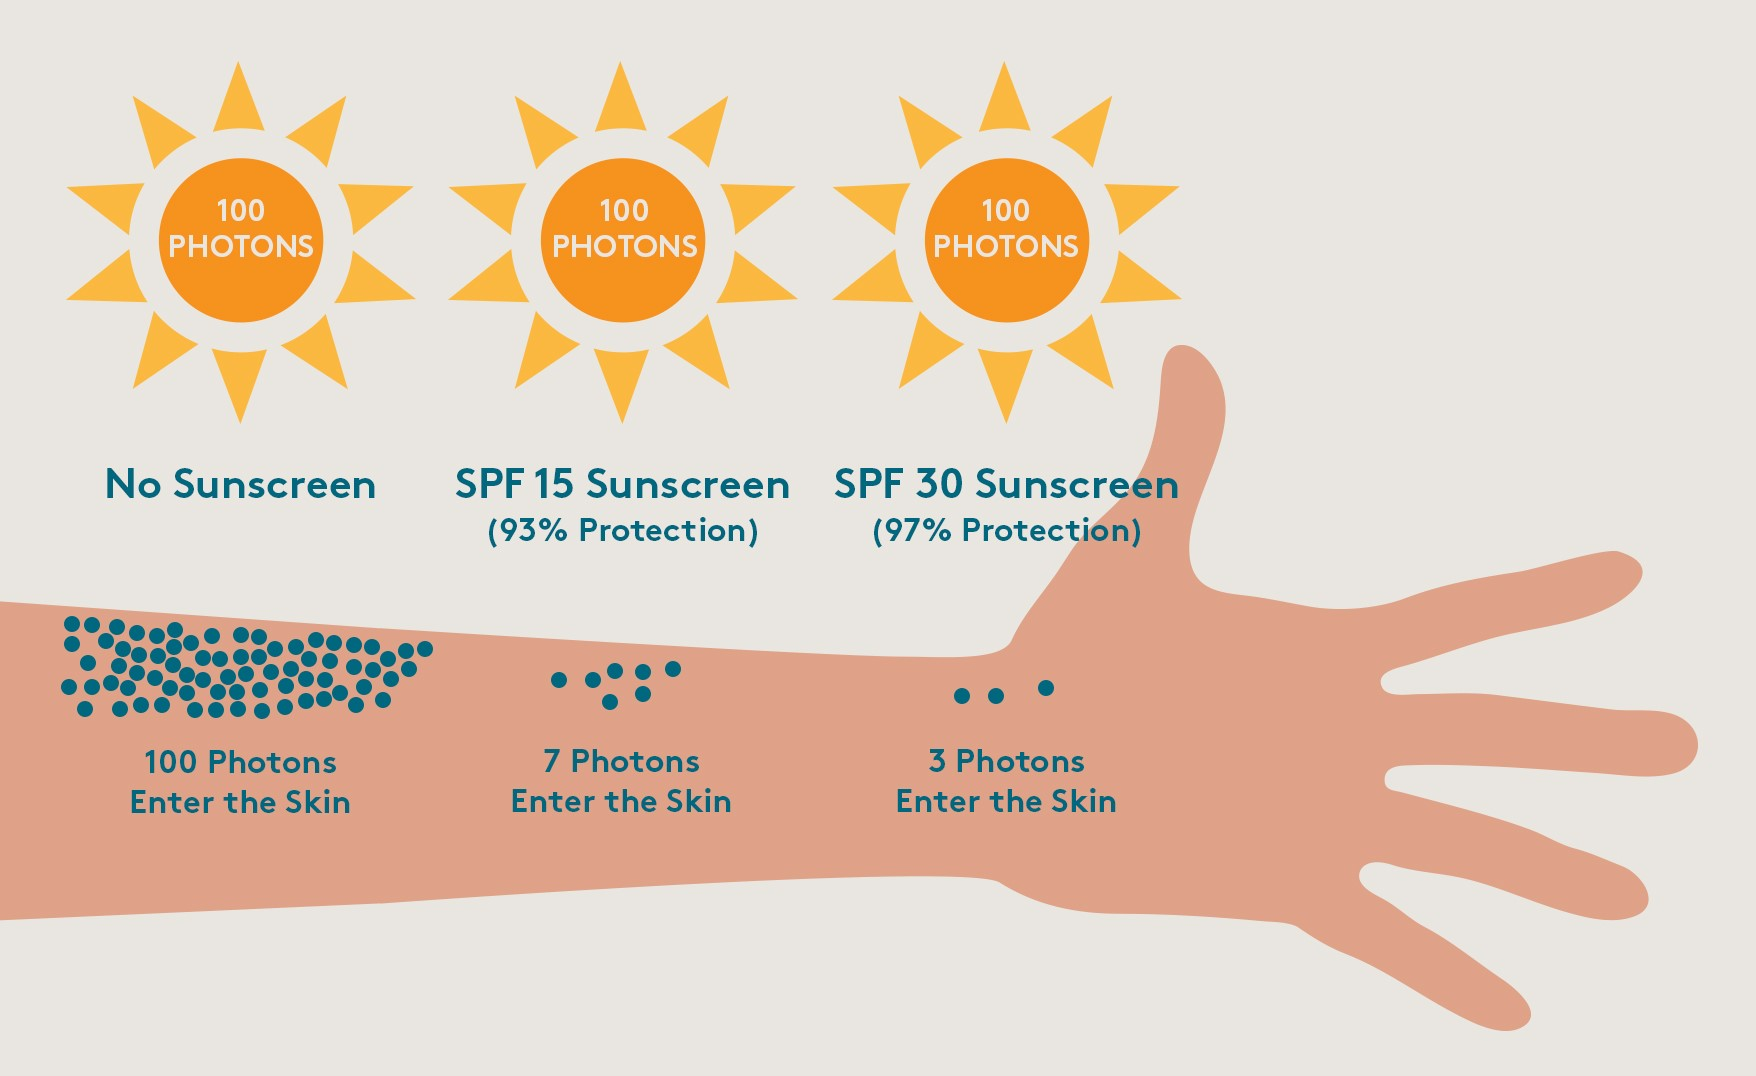 How does sunscreen work against photons